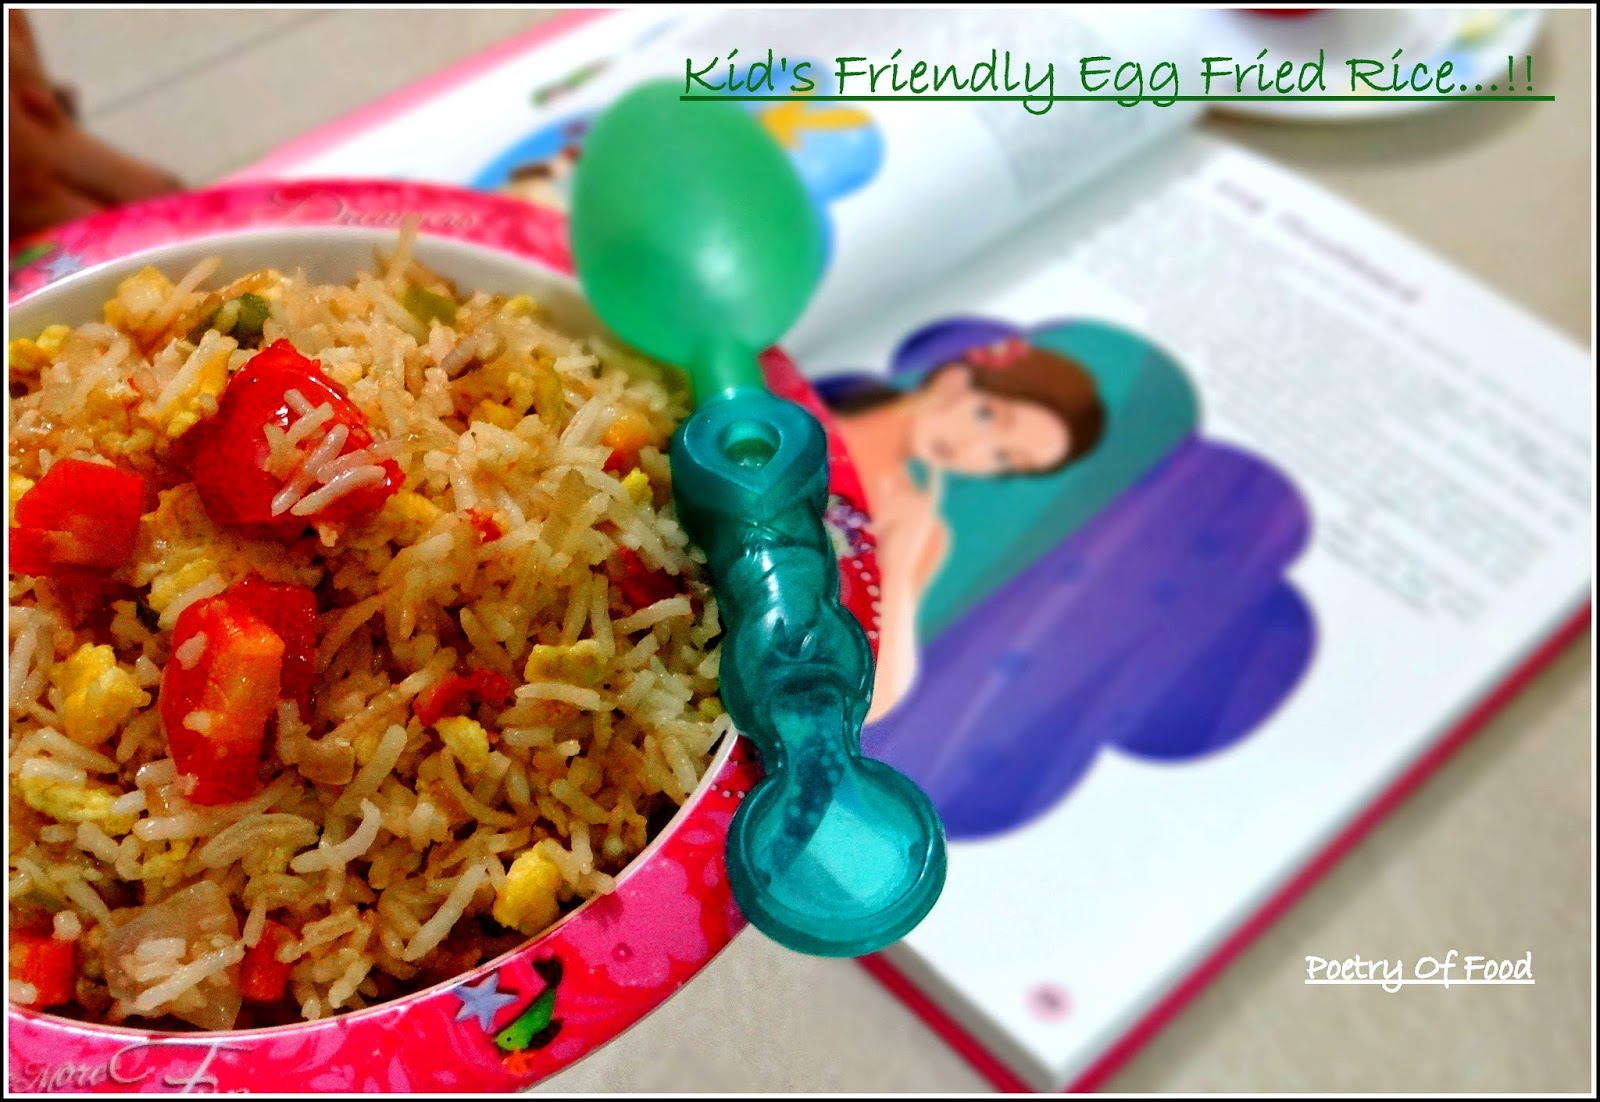 Poetry Of Food: Kids Friendly Egg Fried Rice...!!!